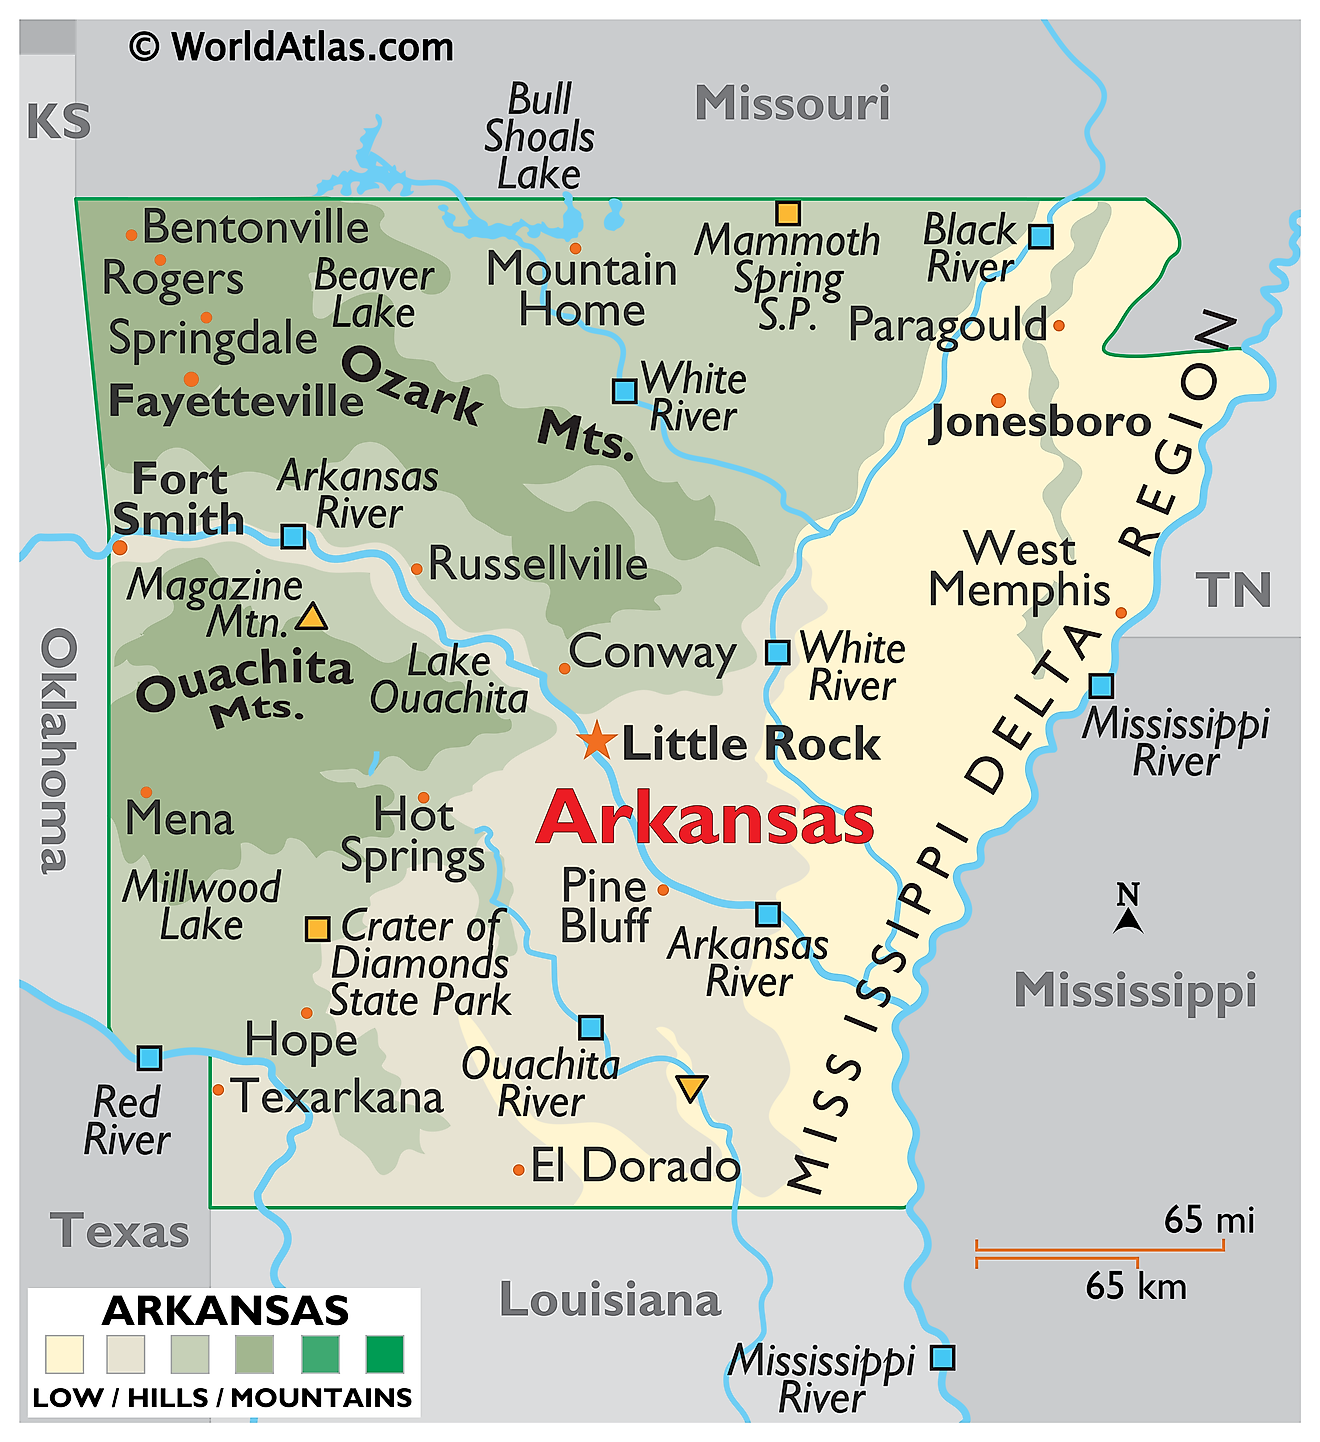 Physical Map of Arkansas. It shows the physical features of Arkansas including its mountain ranges, rivers and lakes.